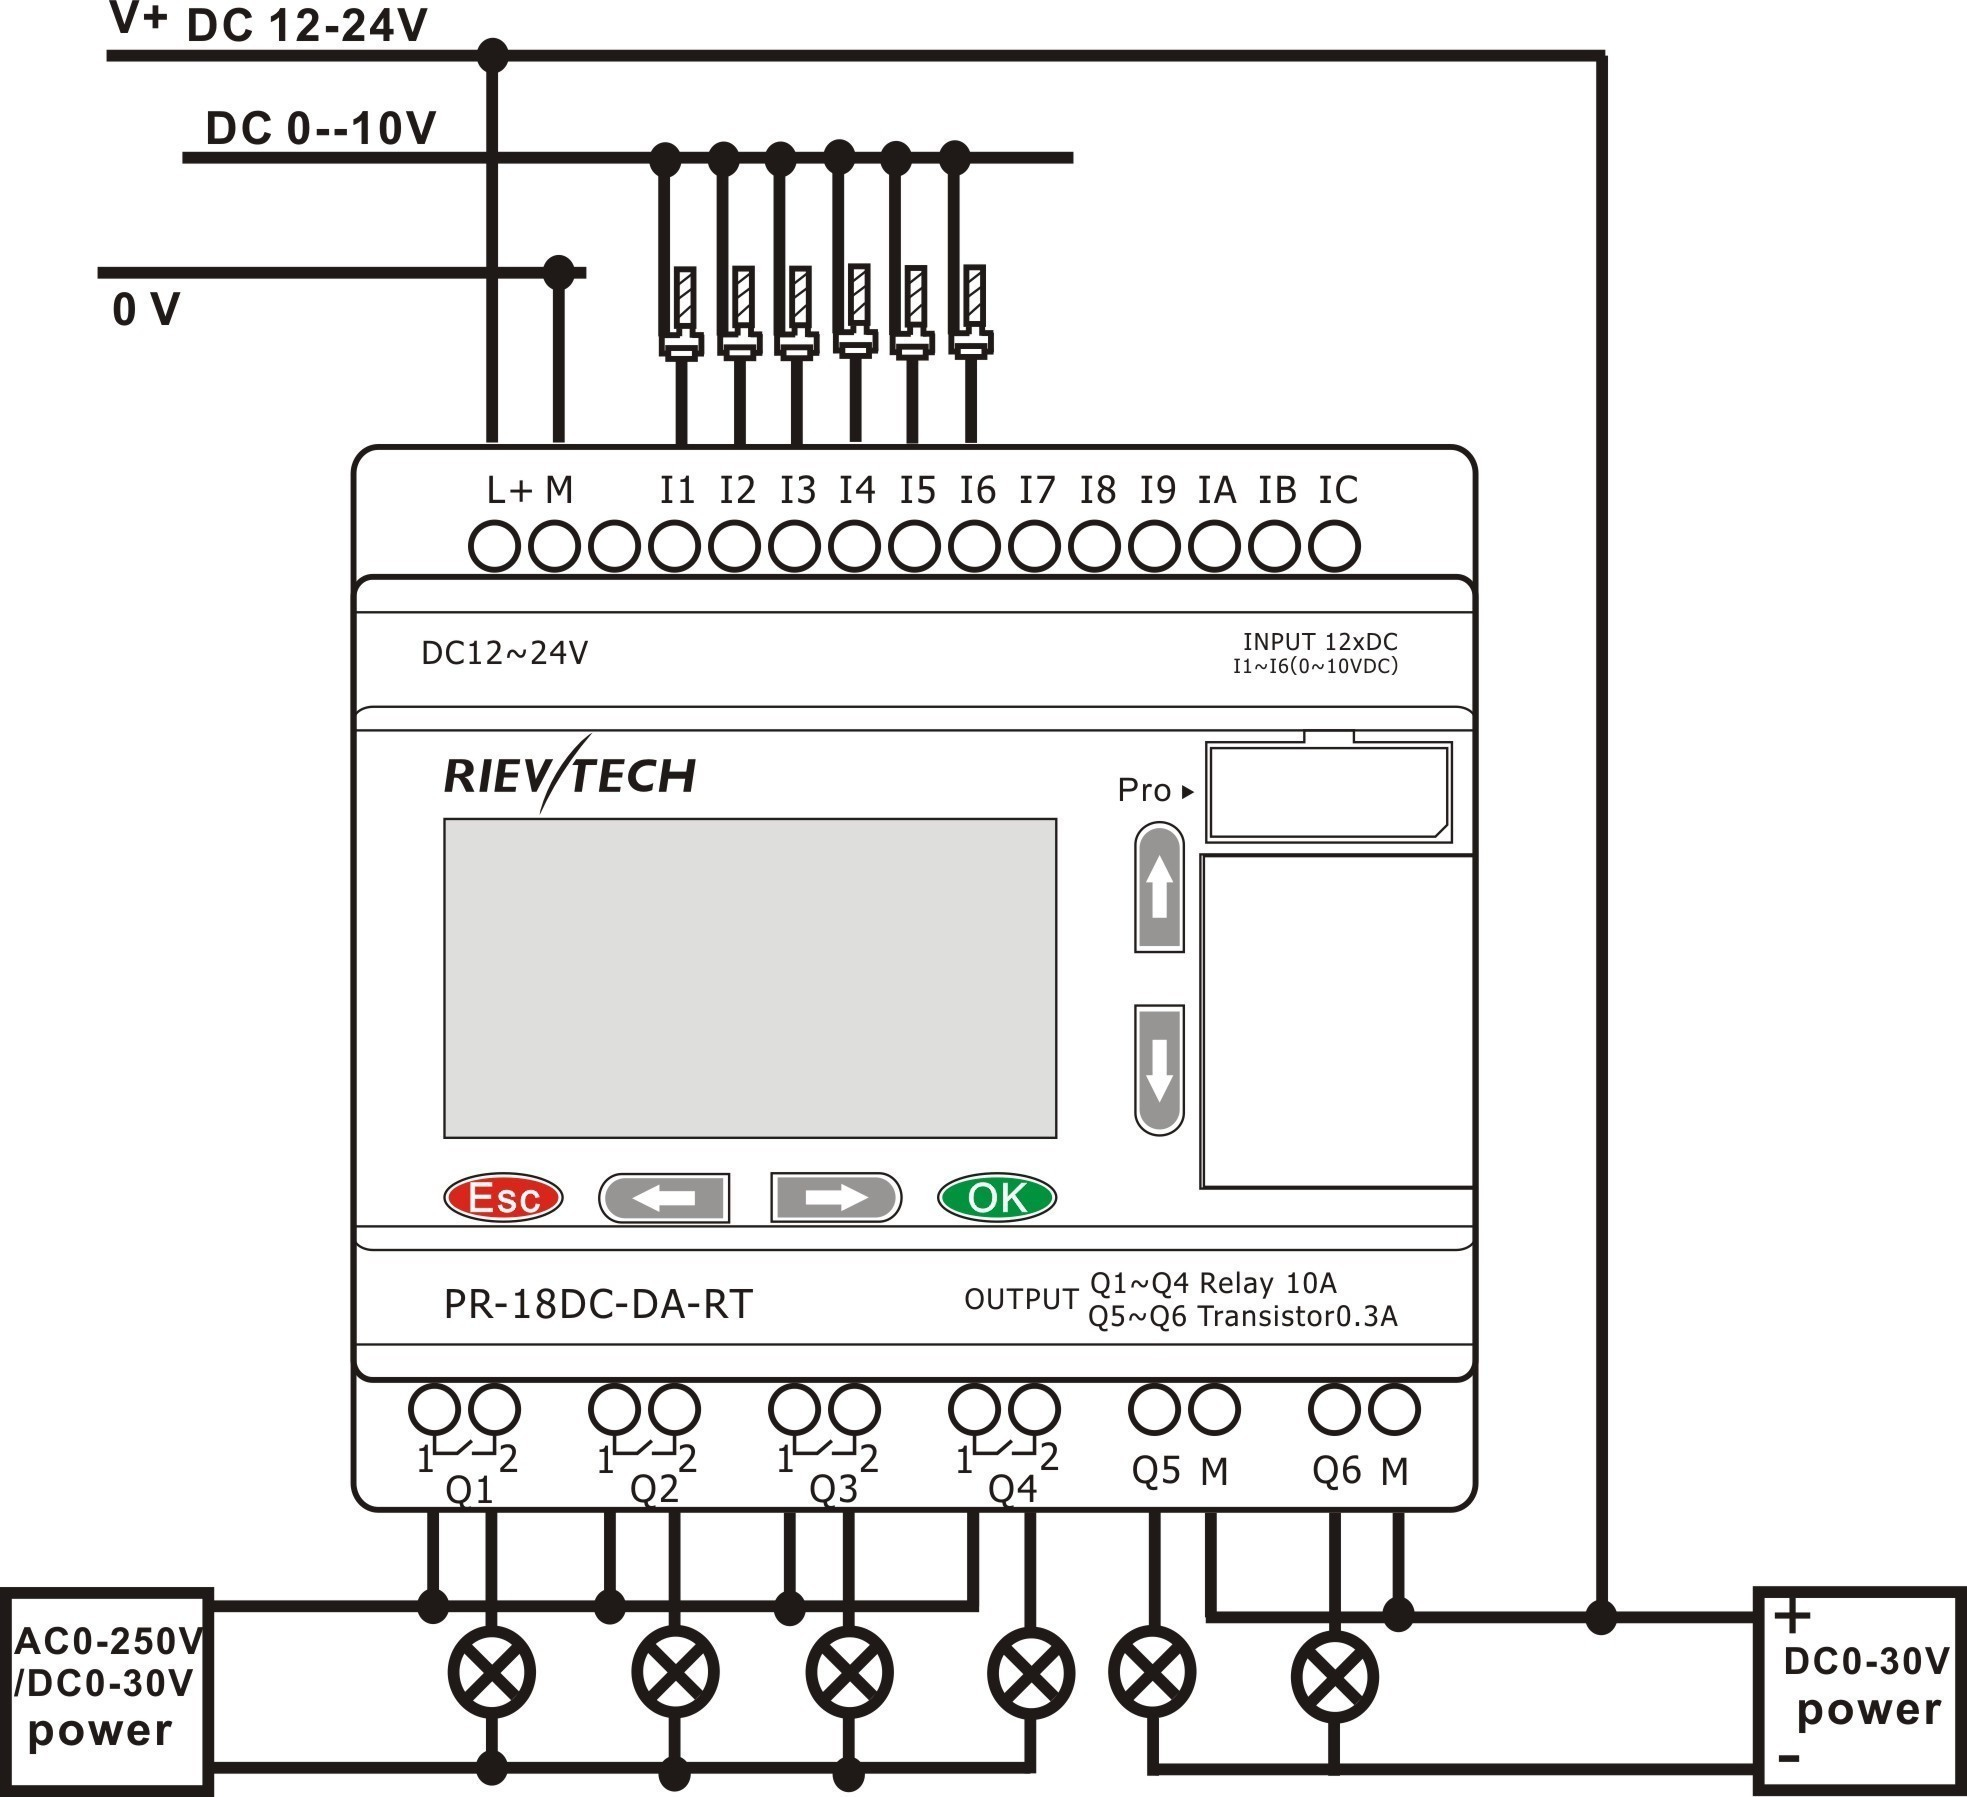 Plc wiring diagram guide gallery wiring diagram sample plc wiring diagram guide collection key card wiring diagram fresh plc wiring diagrams wiring diagram download wiring diagram cheapraybanclubmaster Images